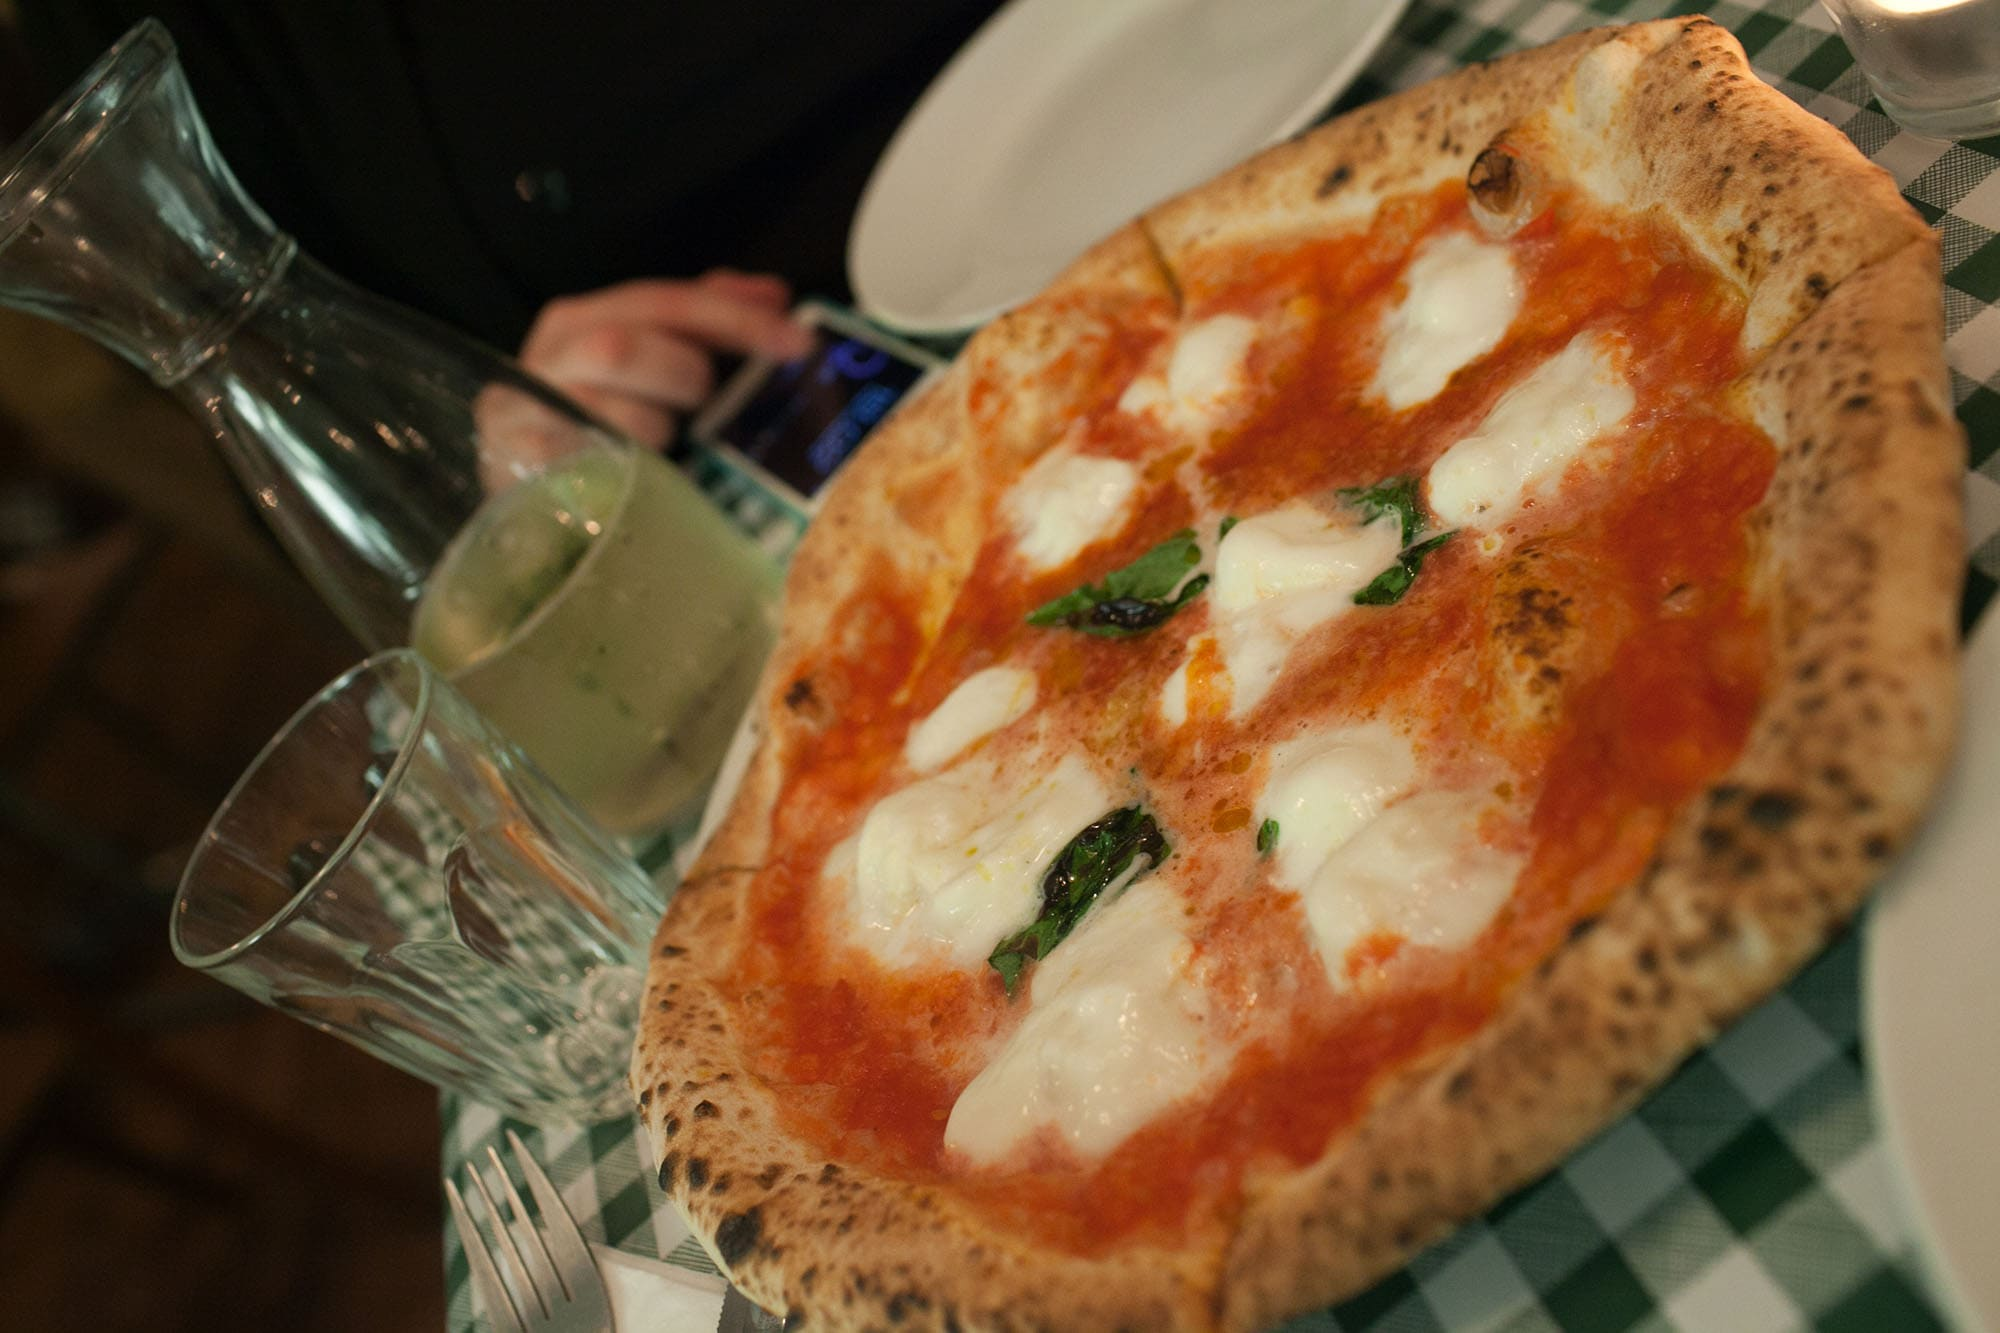 Bufala pizza at Pizza Pilgrims in Soho, London, England